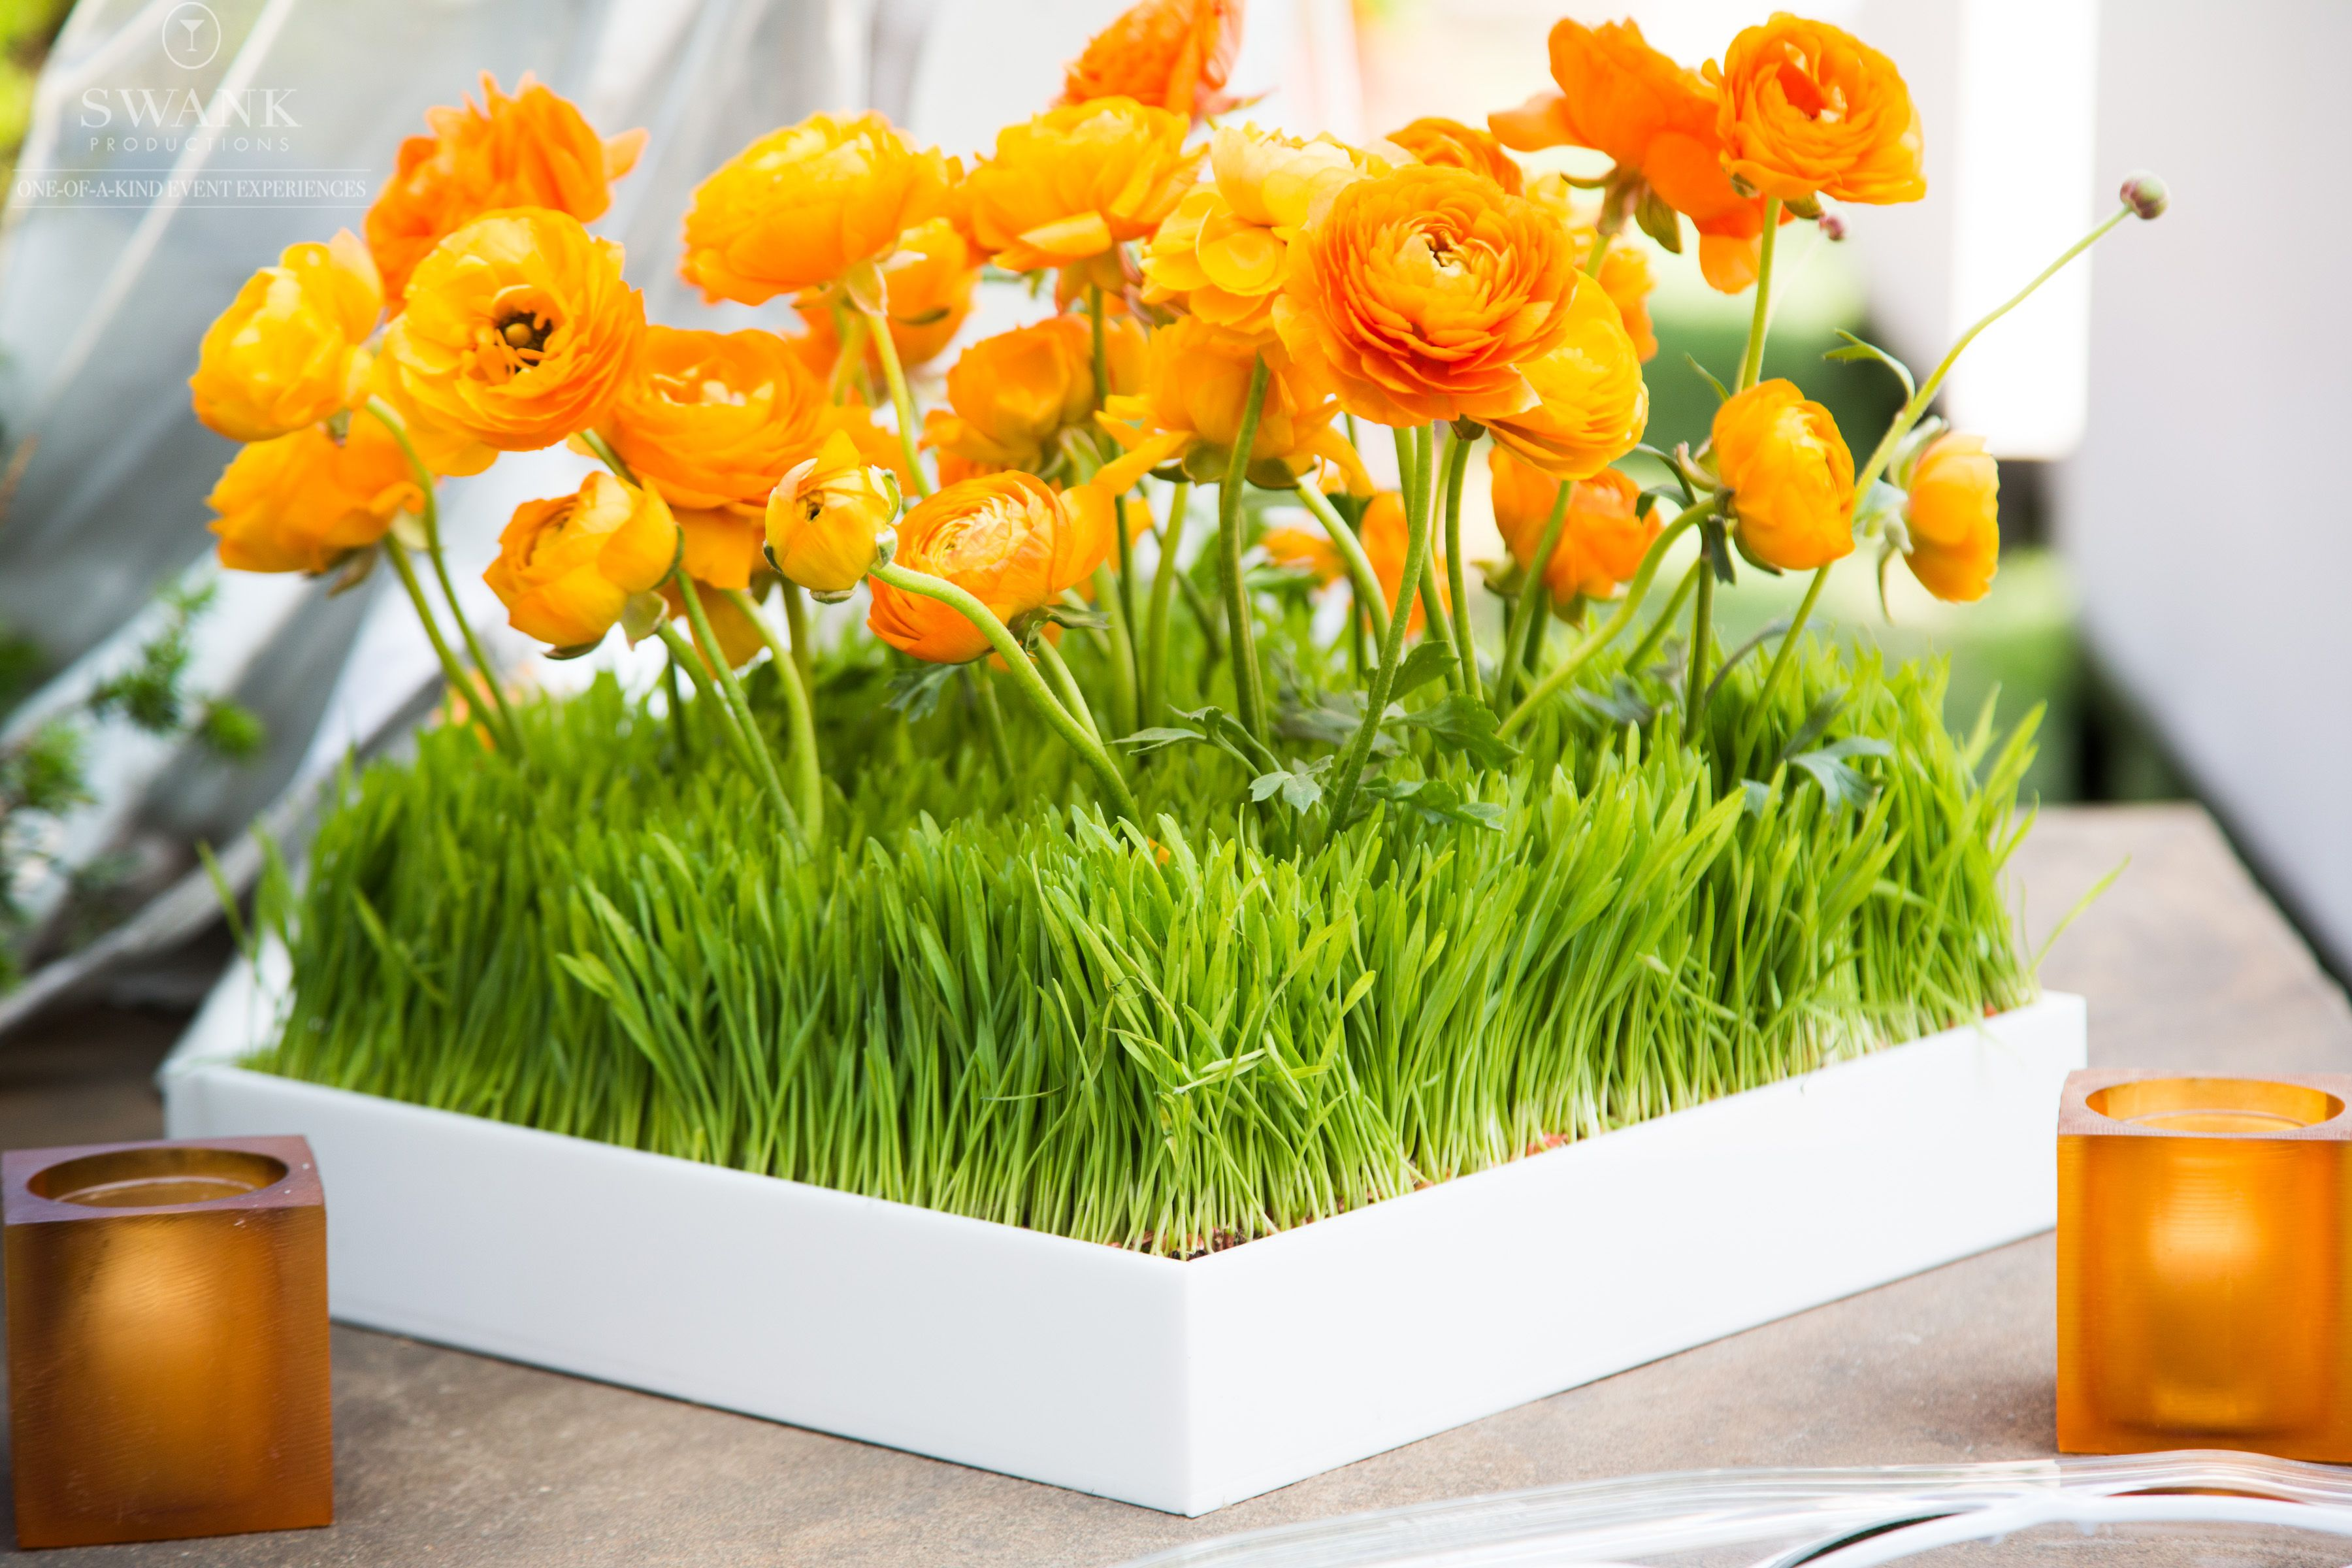 Planned, Designed & Produced by www.swankproductions.com orange capital #swankproductions #corporateparty #620loftandgarden #chic #party #eventplanner #bestofthebest #nyc #reception #colorful #decor #lounge #fun #flowers #orange #ranunculus #ideas #inspiration #beautiful #grass #candles #manhattan